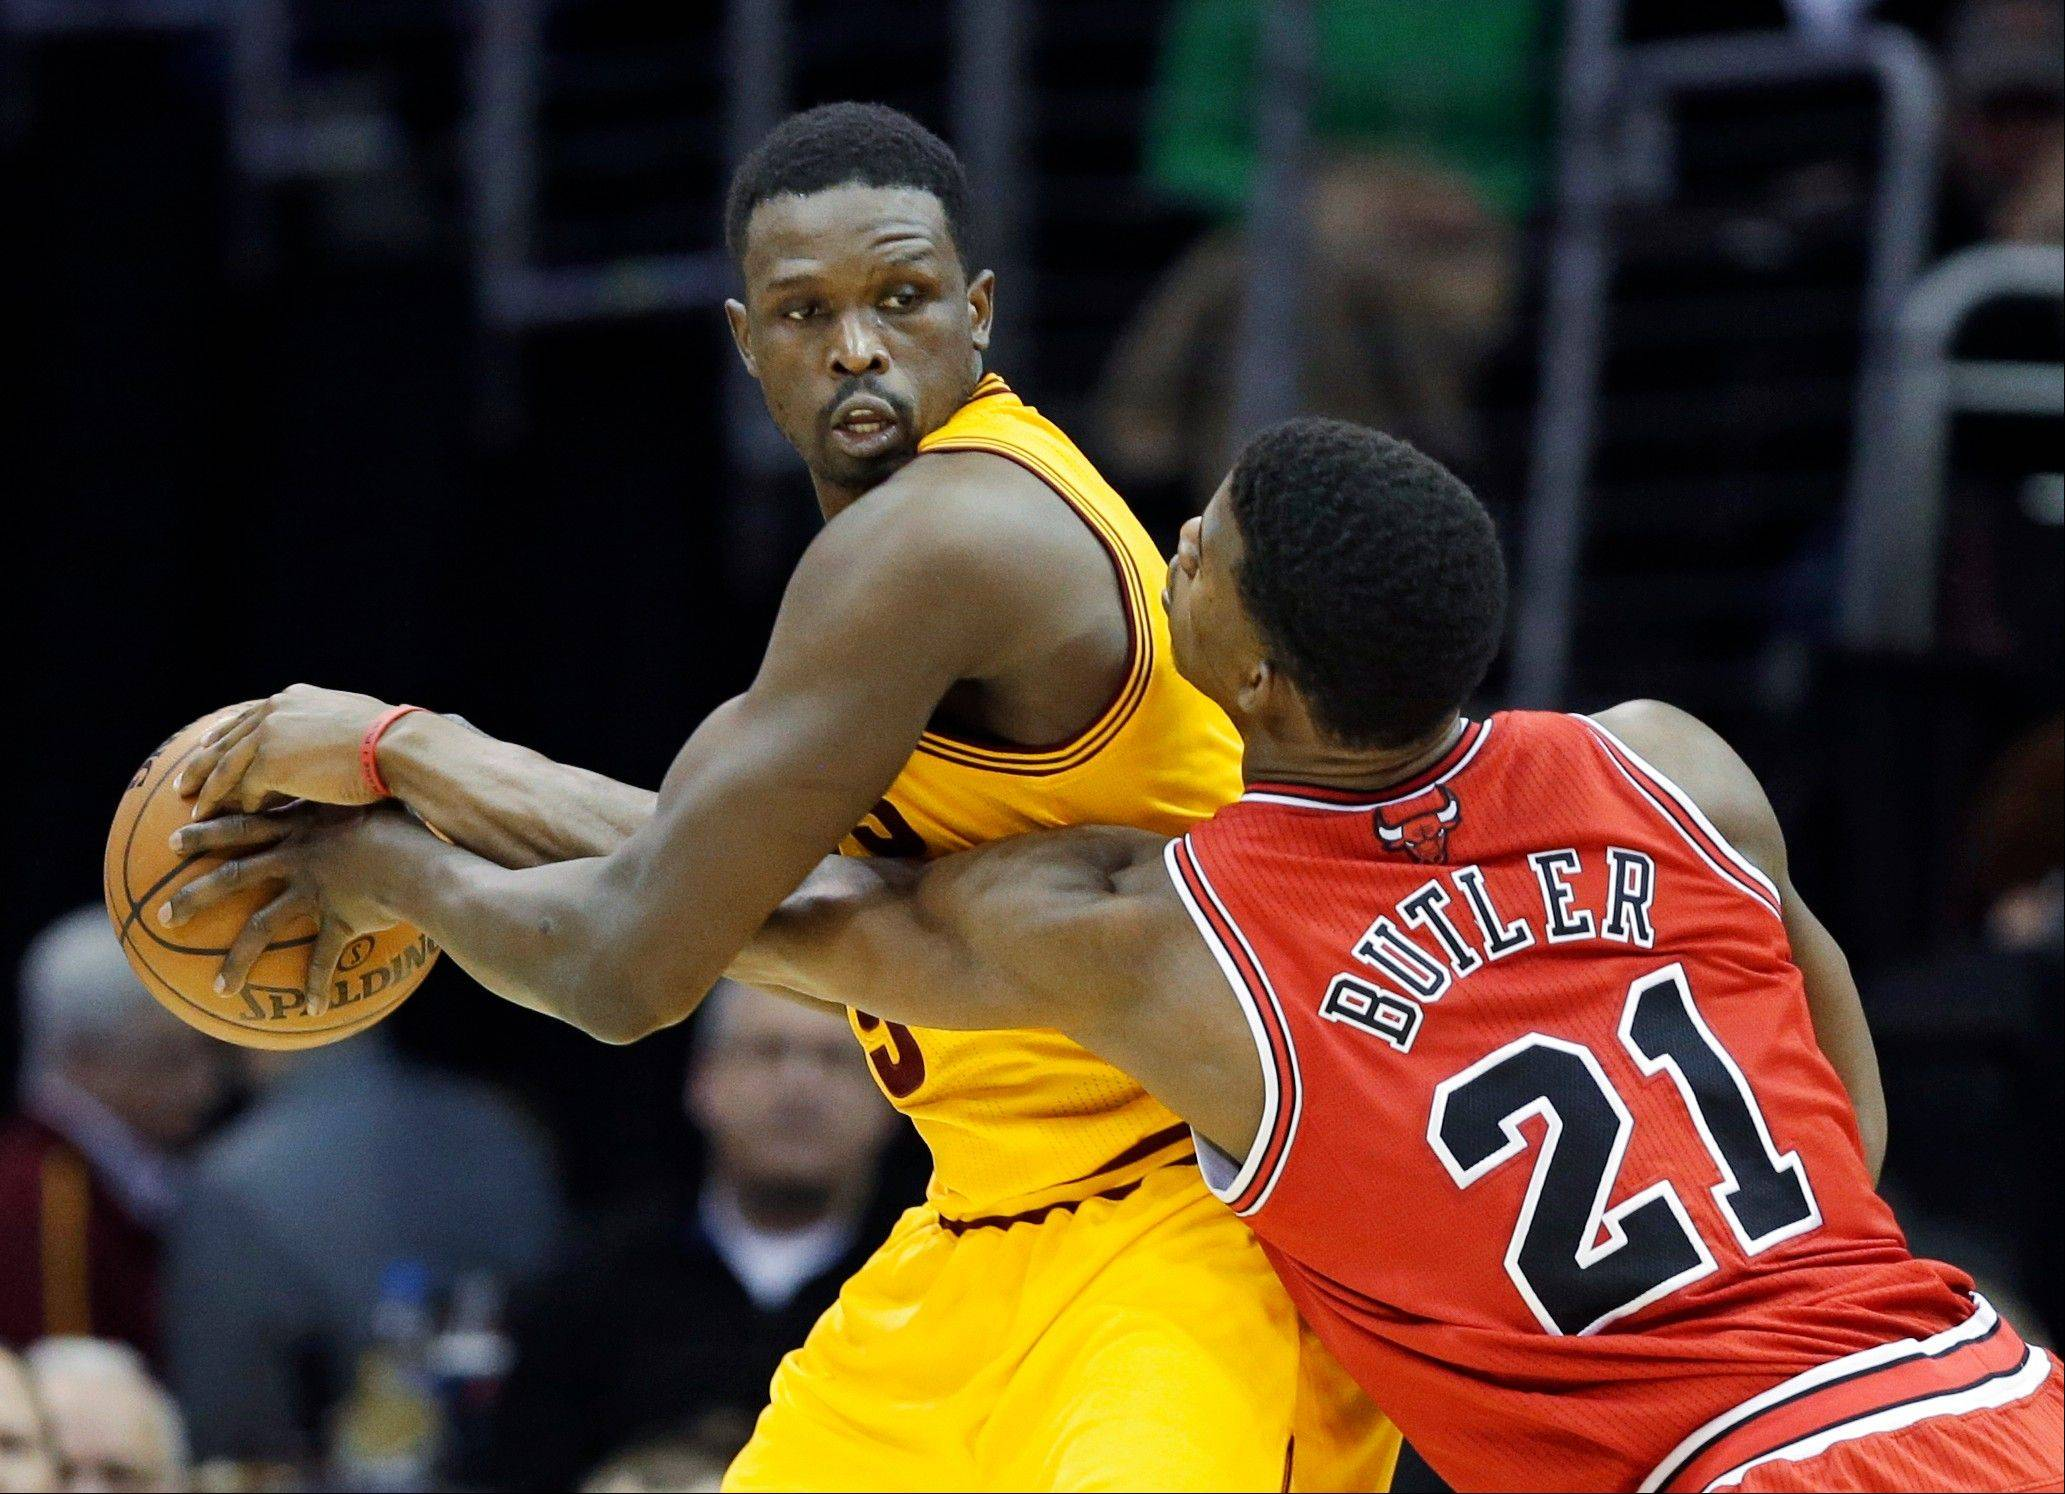 The Bulls' Jimmy Butler (21) tries to poke the ball away from Cleveland Cavaliers' Luol Deng during Wednesday night's game in Cleveland. The Bulls won 98-87.